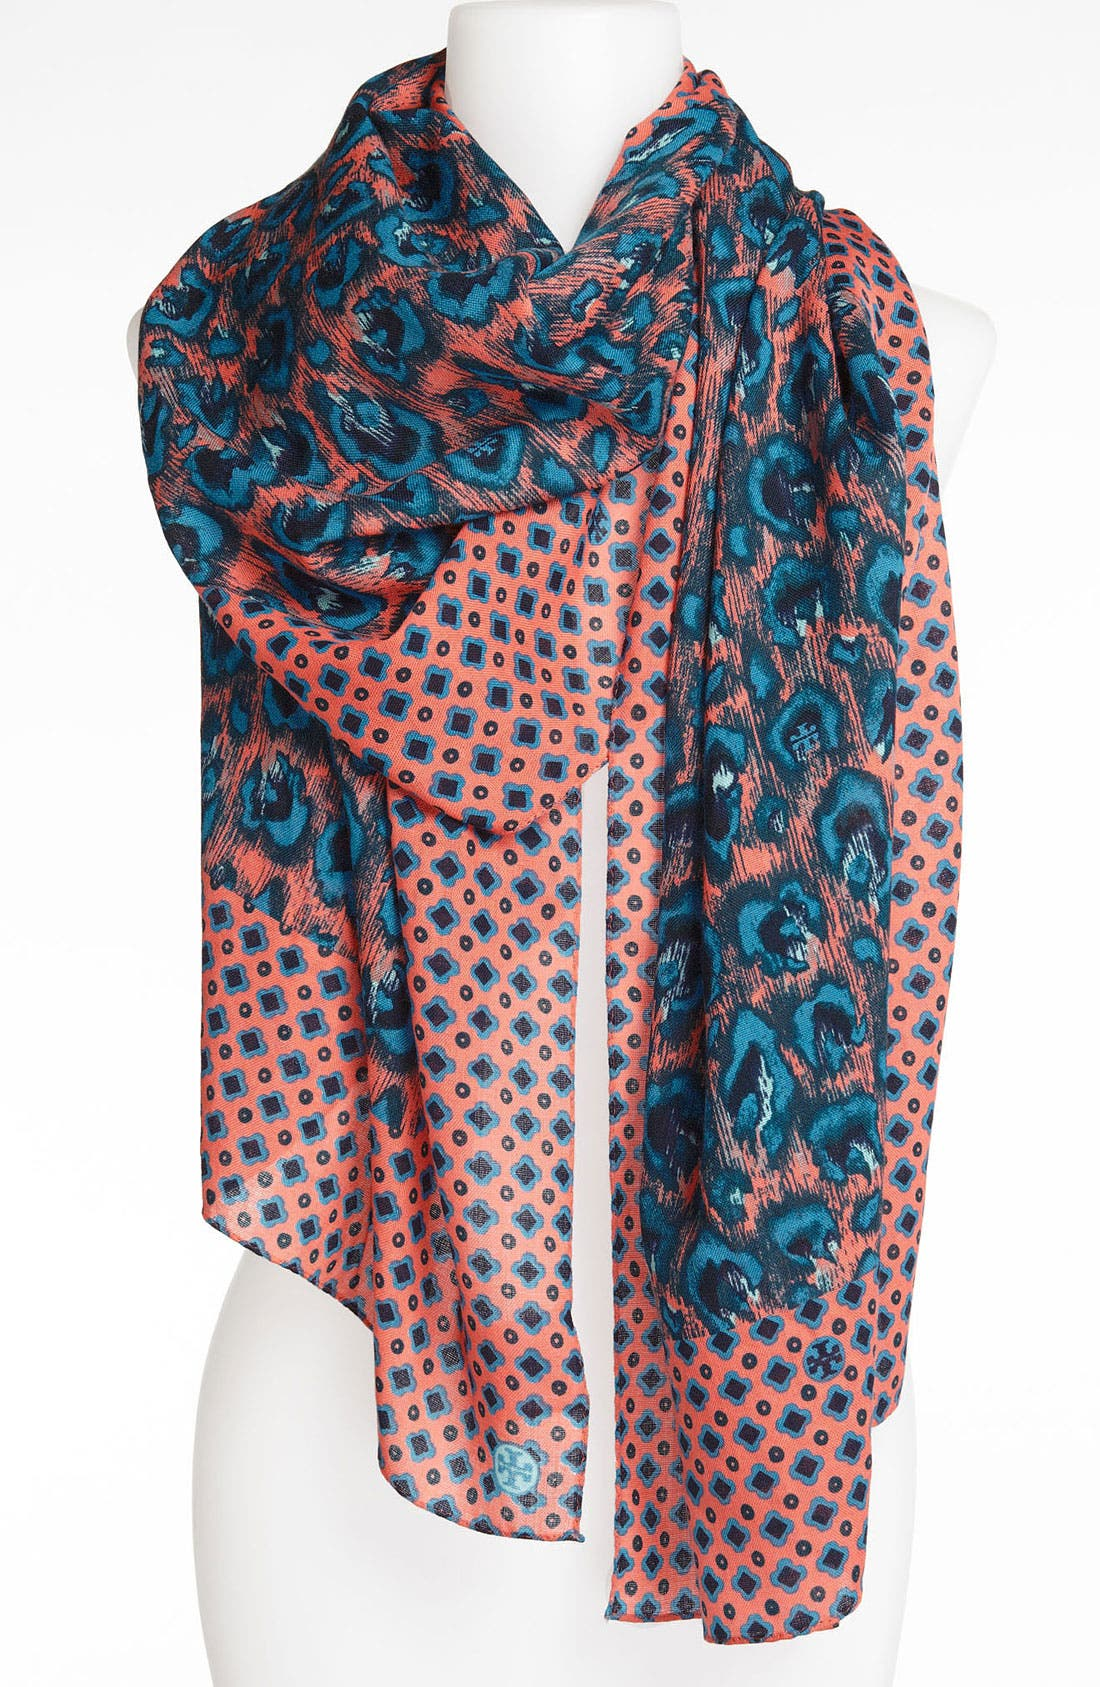 Alternate Image 1 Selected - Tory Burch 'Wray' Wool Scarf